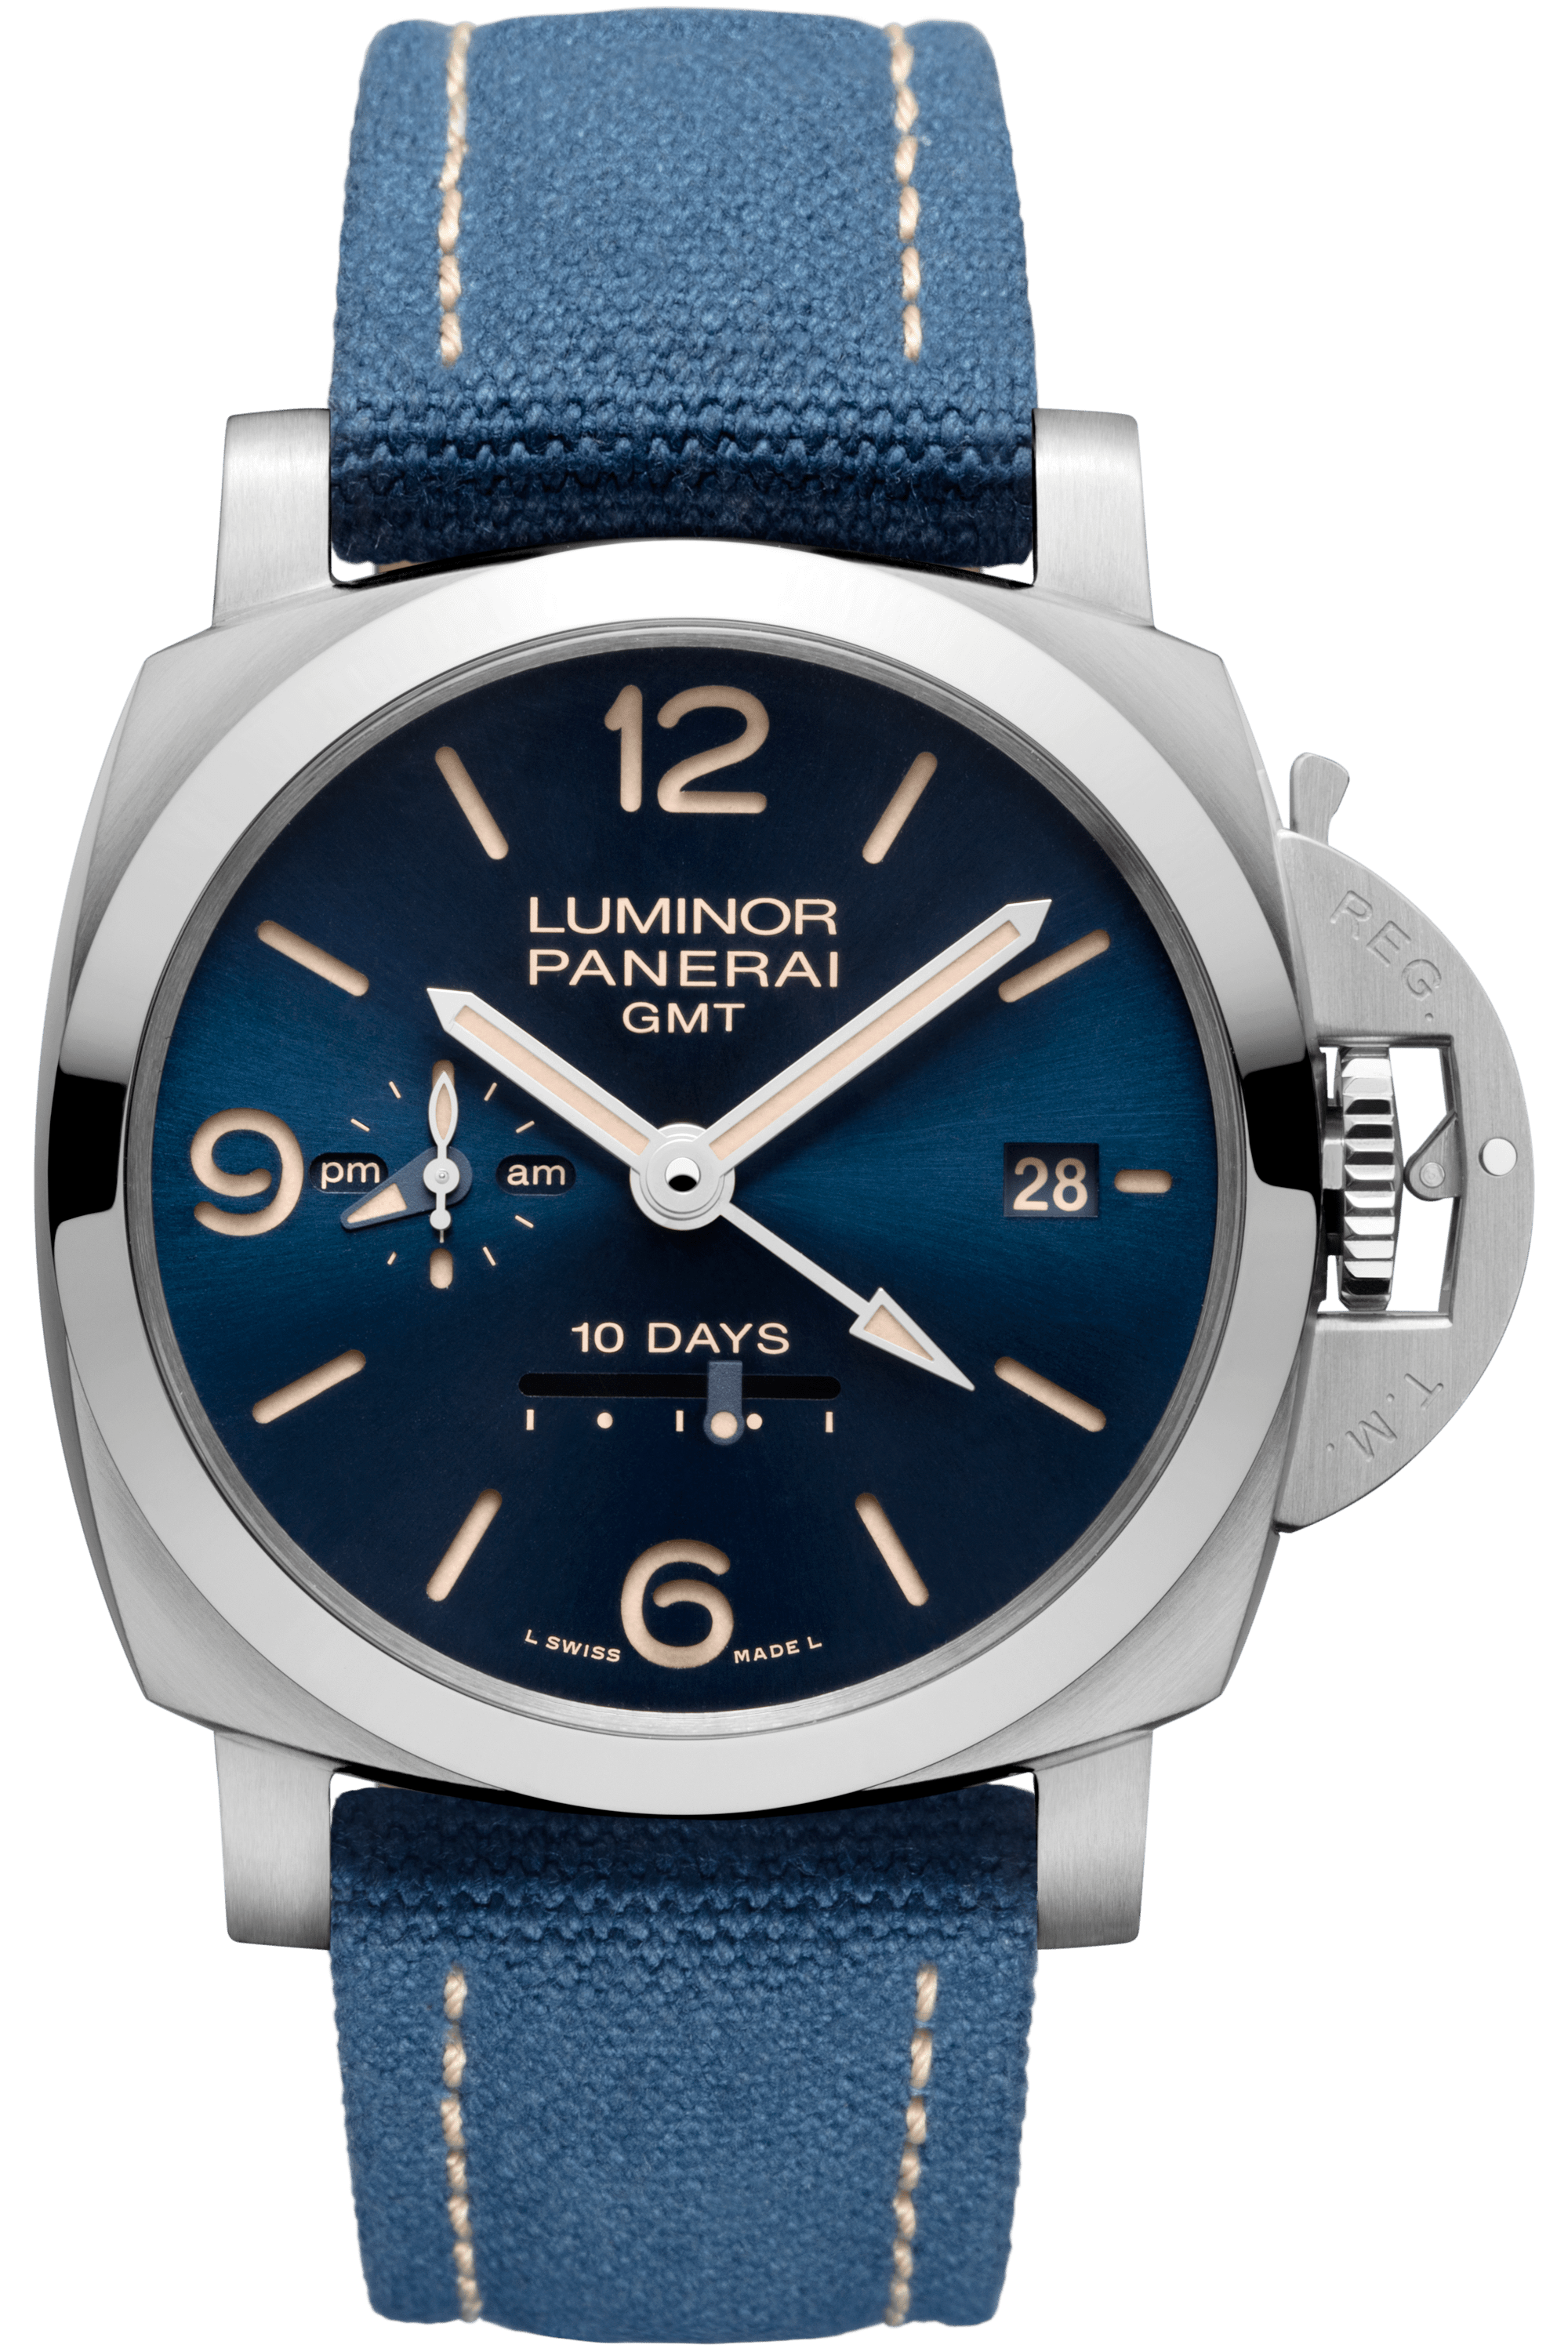 PNPAM00986 - Luminor GMT 10 Days - 44mm